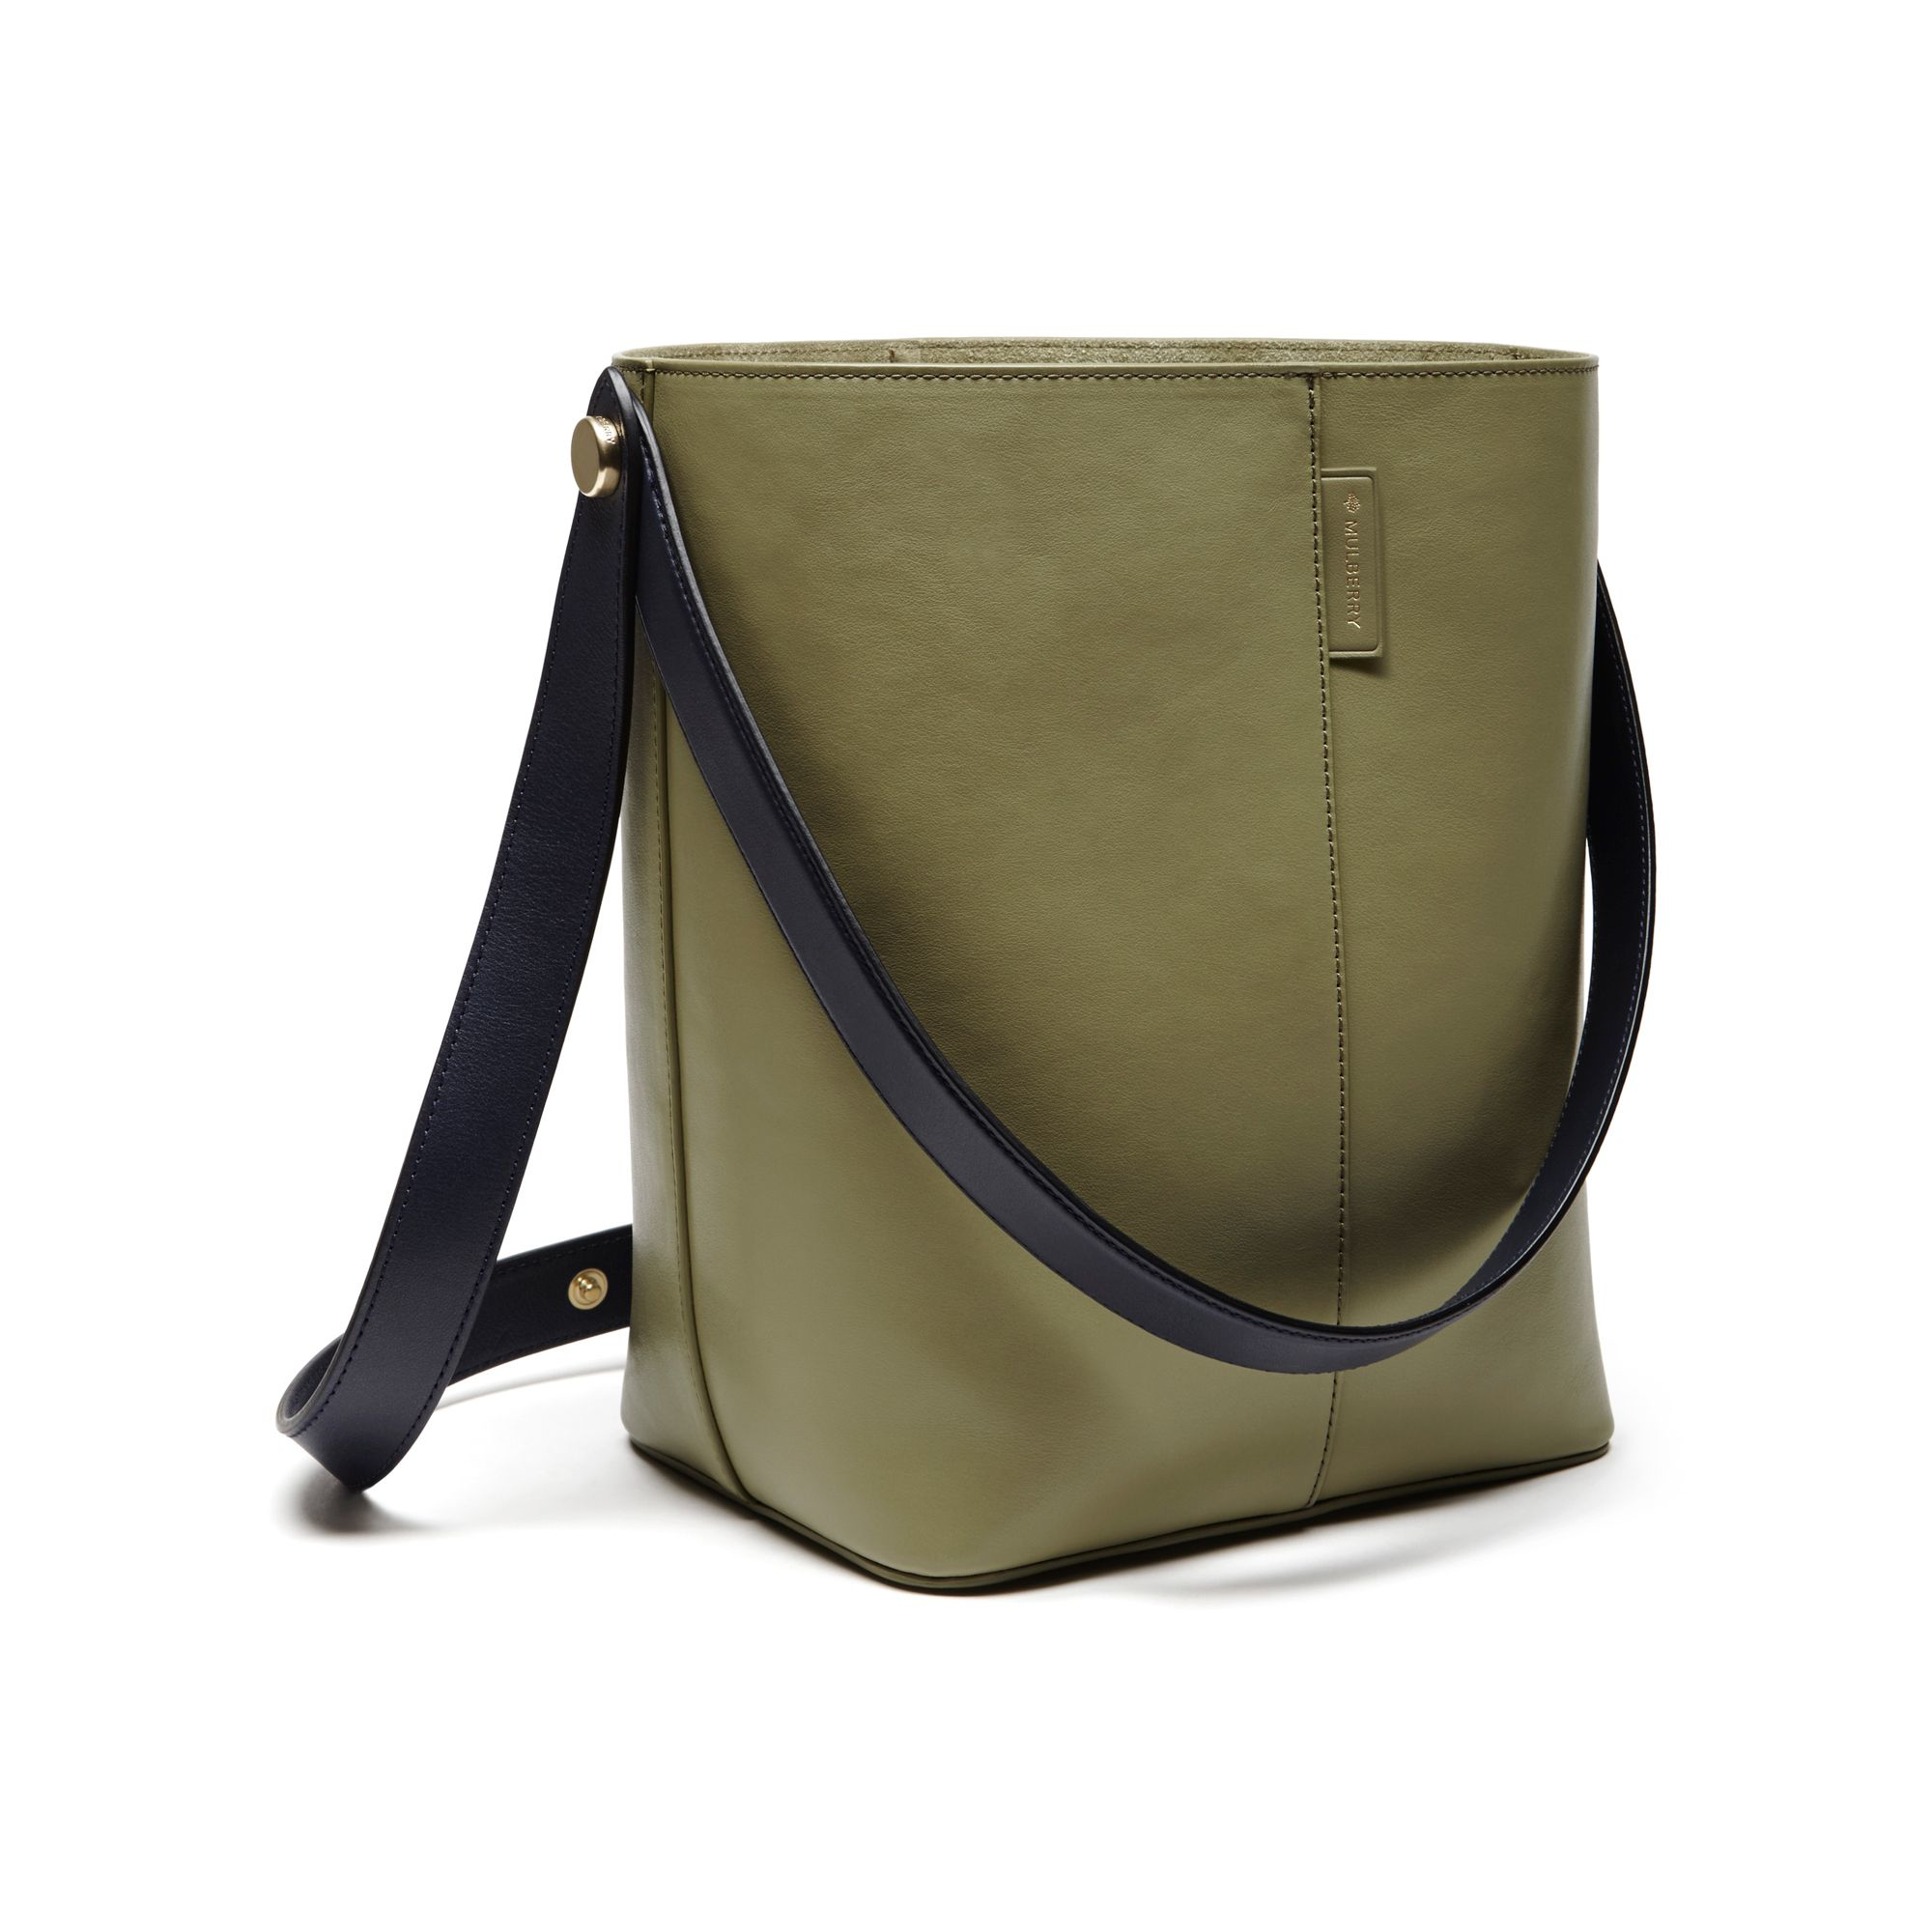 ... best price mulberry small kite leather tote in green lyst 82bc3 e82c3 b1fa9cb1aef6b